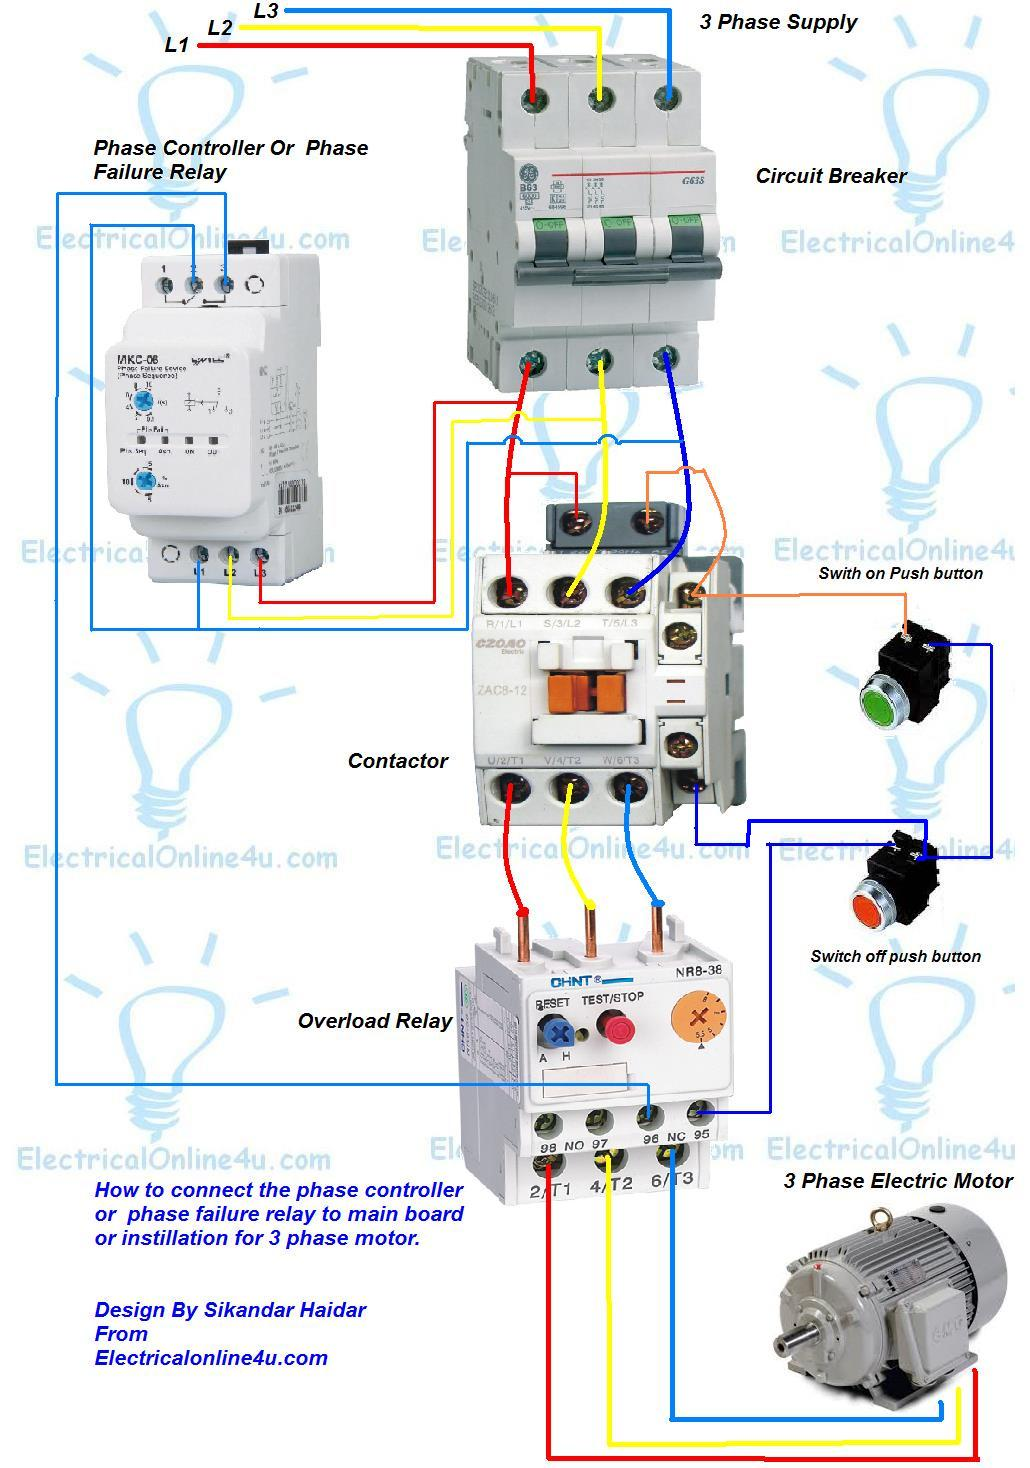 Electric Motor Wiring Diagram 3 Phase : Phase controller wiring failure relay diagram